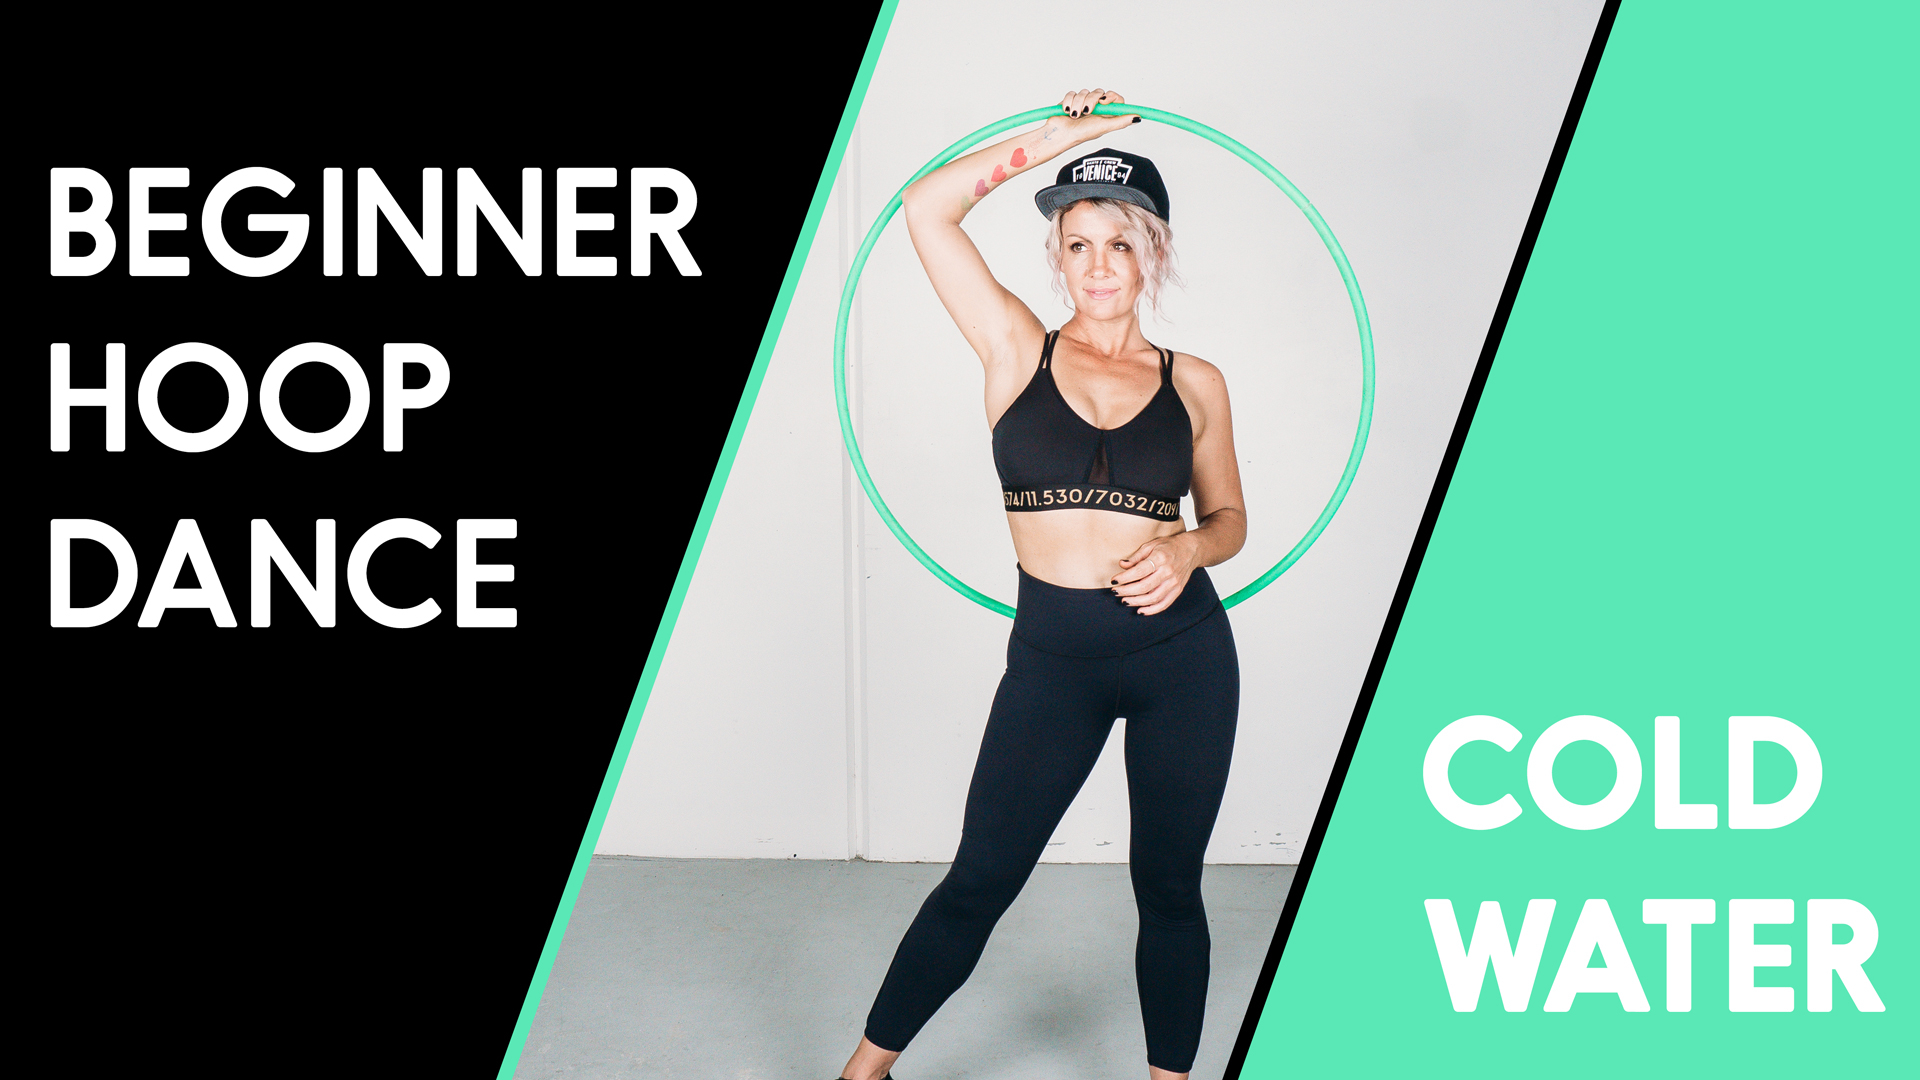 Beginners Hoop Love Your Body Workout : Cold Water by Major Lazer